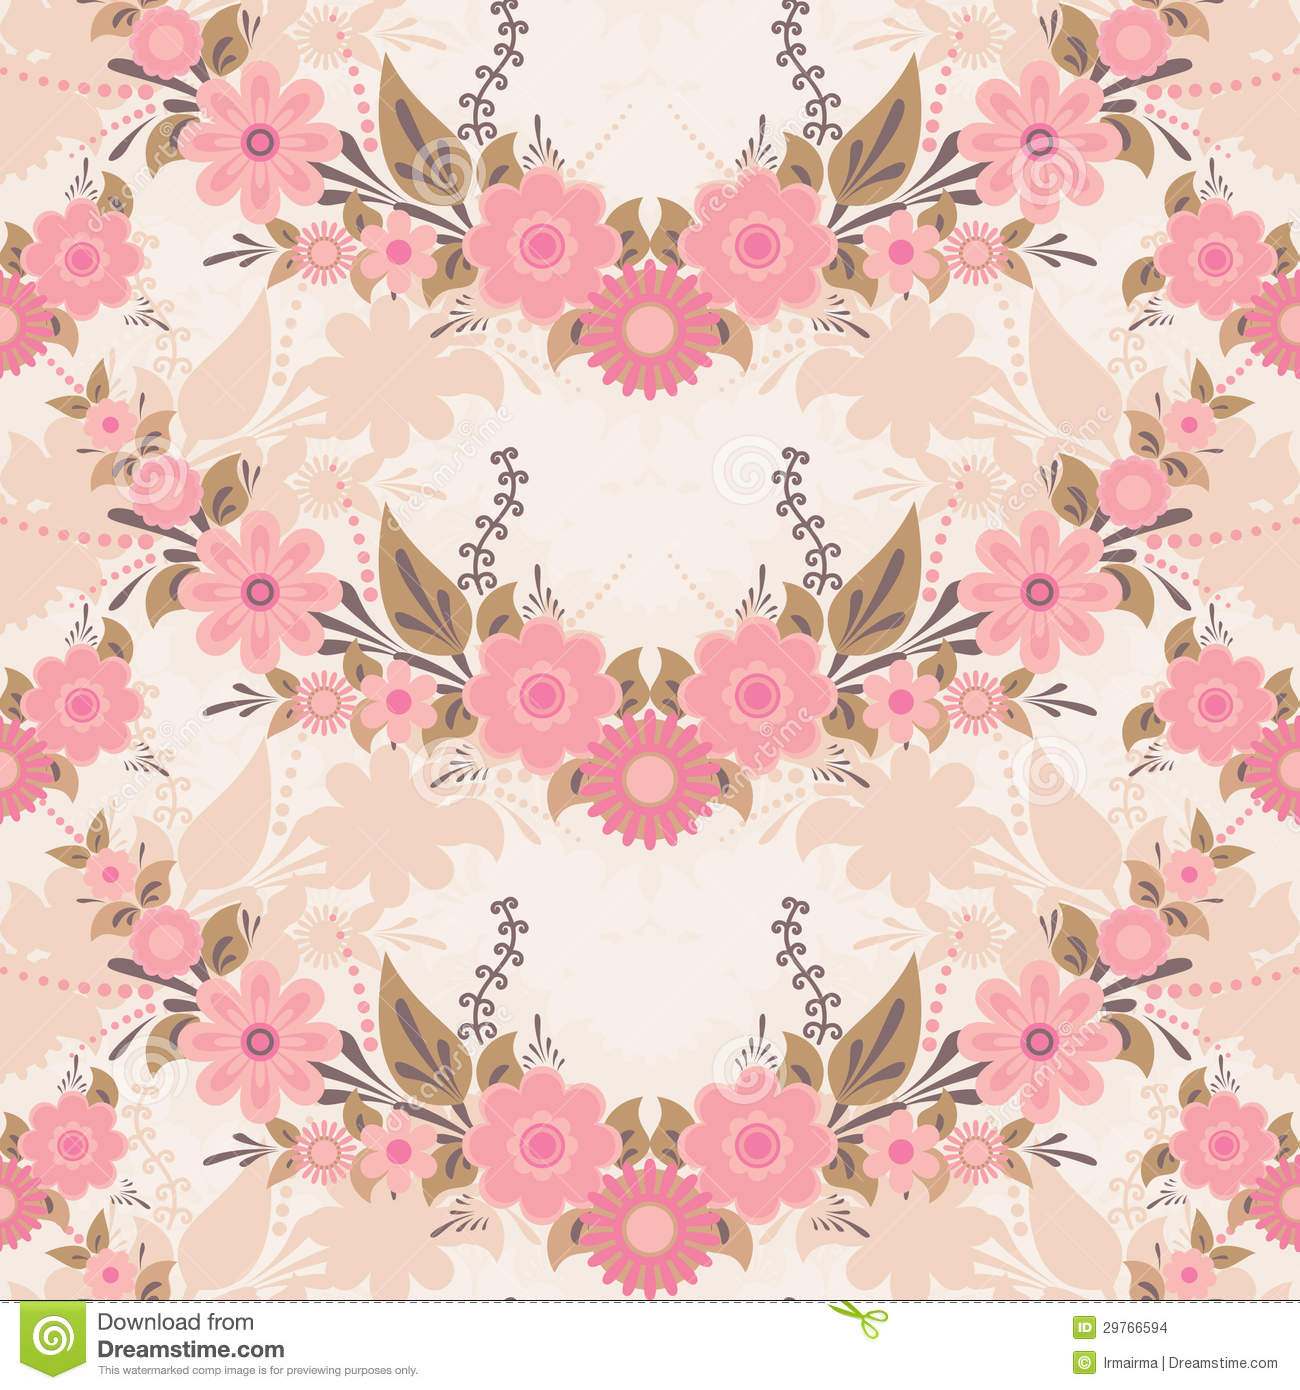 Pink Flower Pattern Stock Vector Illustration Of Backdrop 29766594